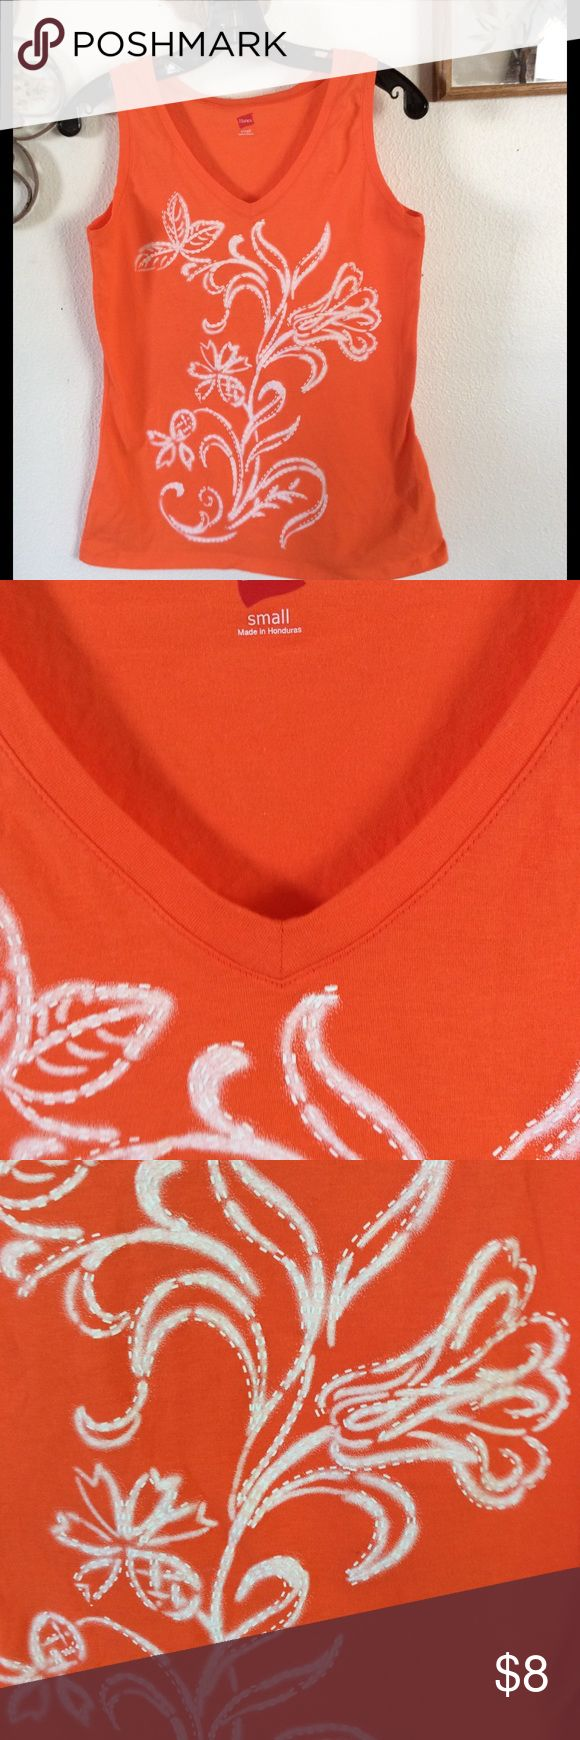 NEW HANES ORANGE  T SHIRT WITH FLOWER OUTLINE NEW NO TAGS HANES ORANGE SLEEVELESS T SHIRT WITH WHITE FLOWER DESIGN ON FRONT. SIZE SMALL. THE OUTLINE OF THE FLOWER IS WHITE PUFFY PAINT LINES.  NEW NEVER WORN. Tops Tank Tops